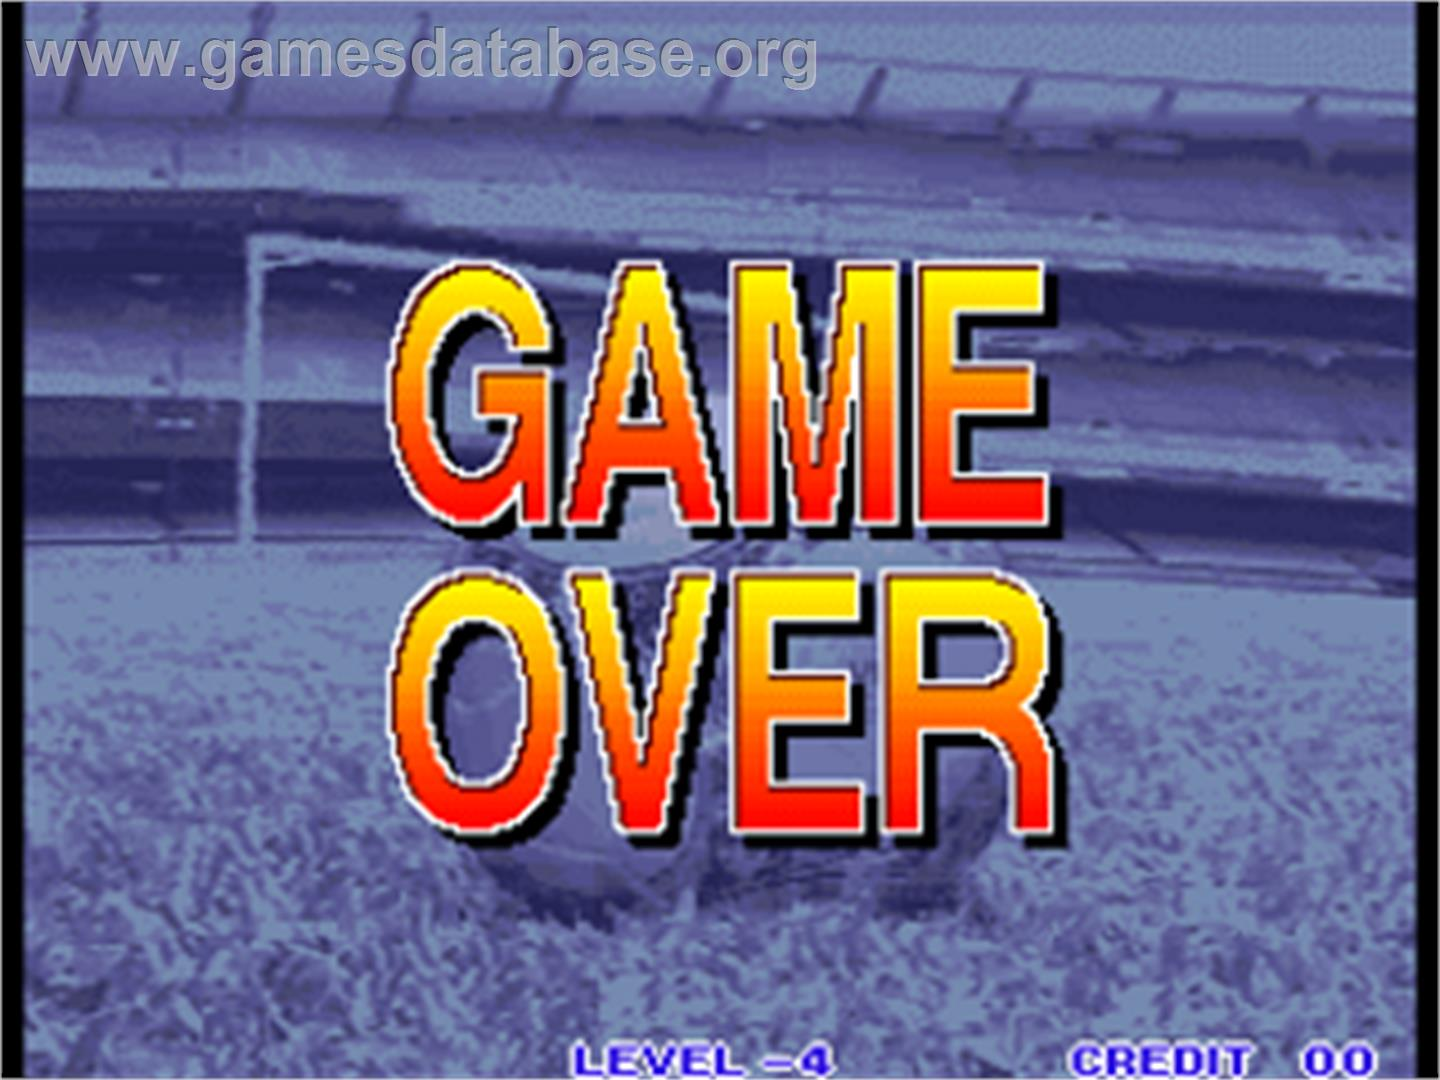 Goal! Goal! Goal! - Arcade - Artwork - Game Over Screen